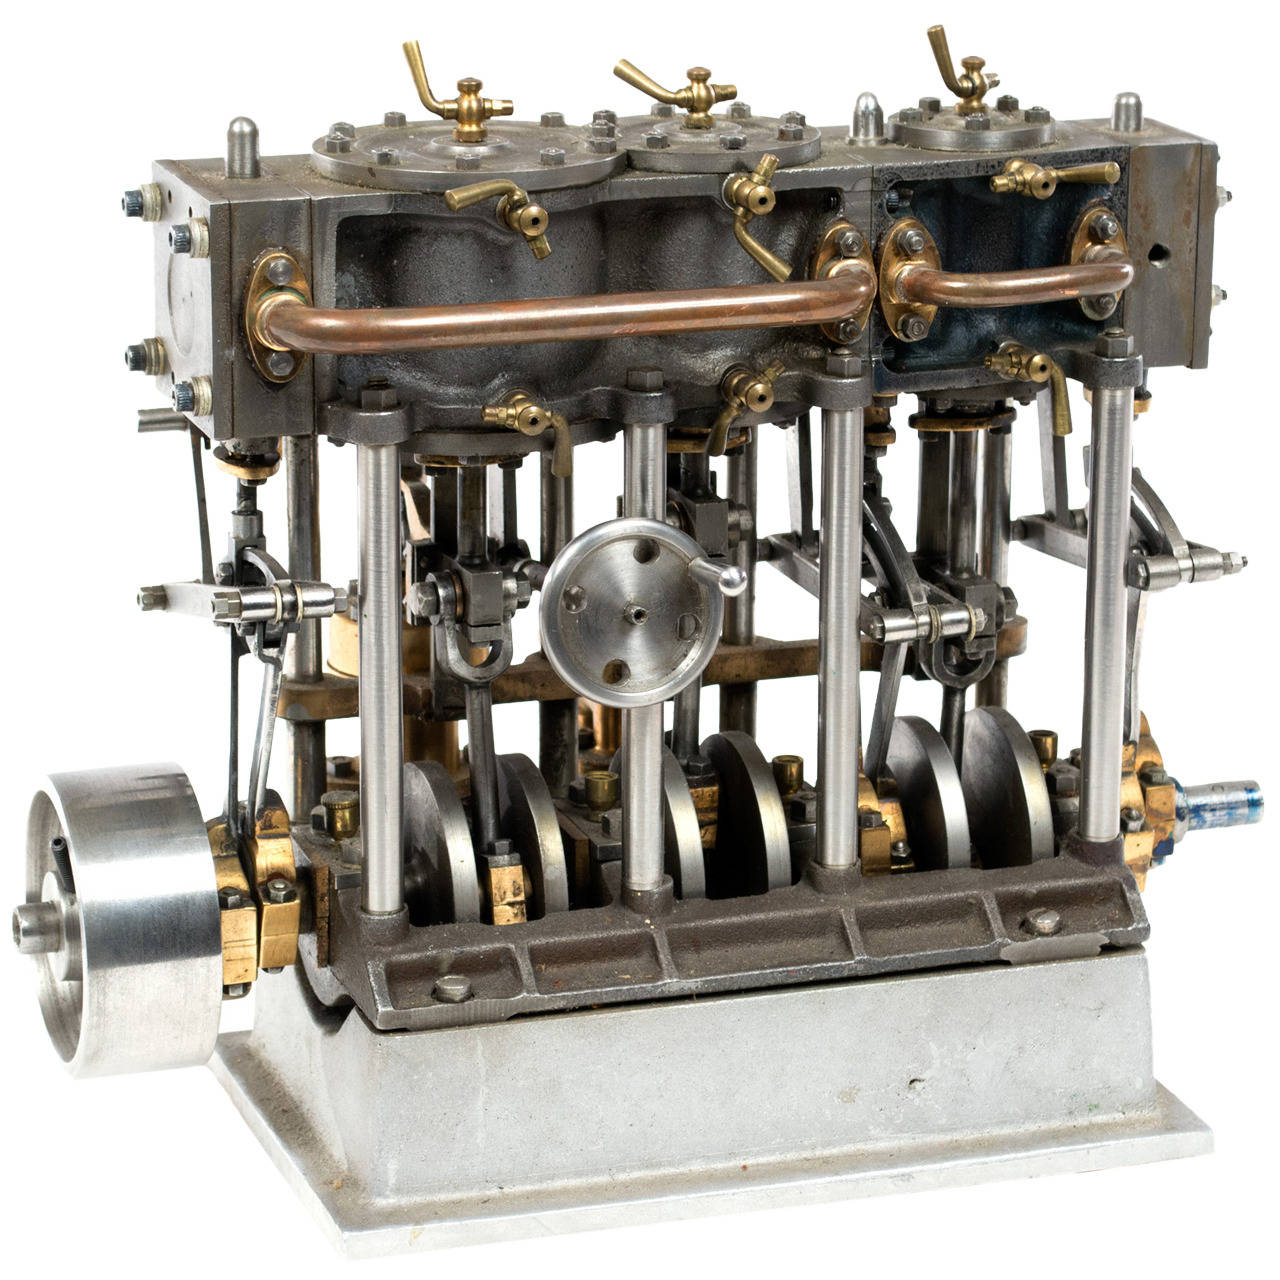 Live Steam Model Of A Triple Expansion Steam Engine At 1stdibs